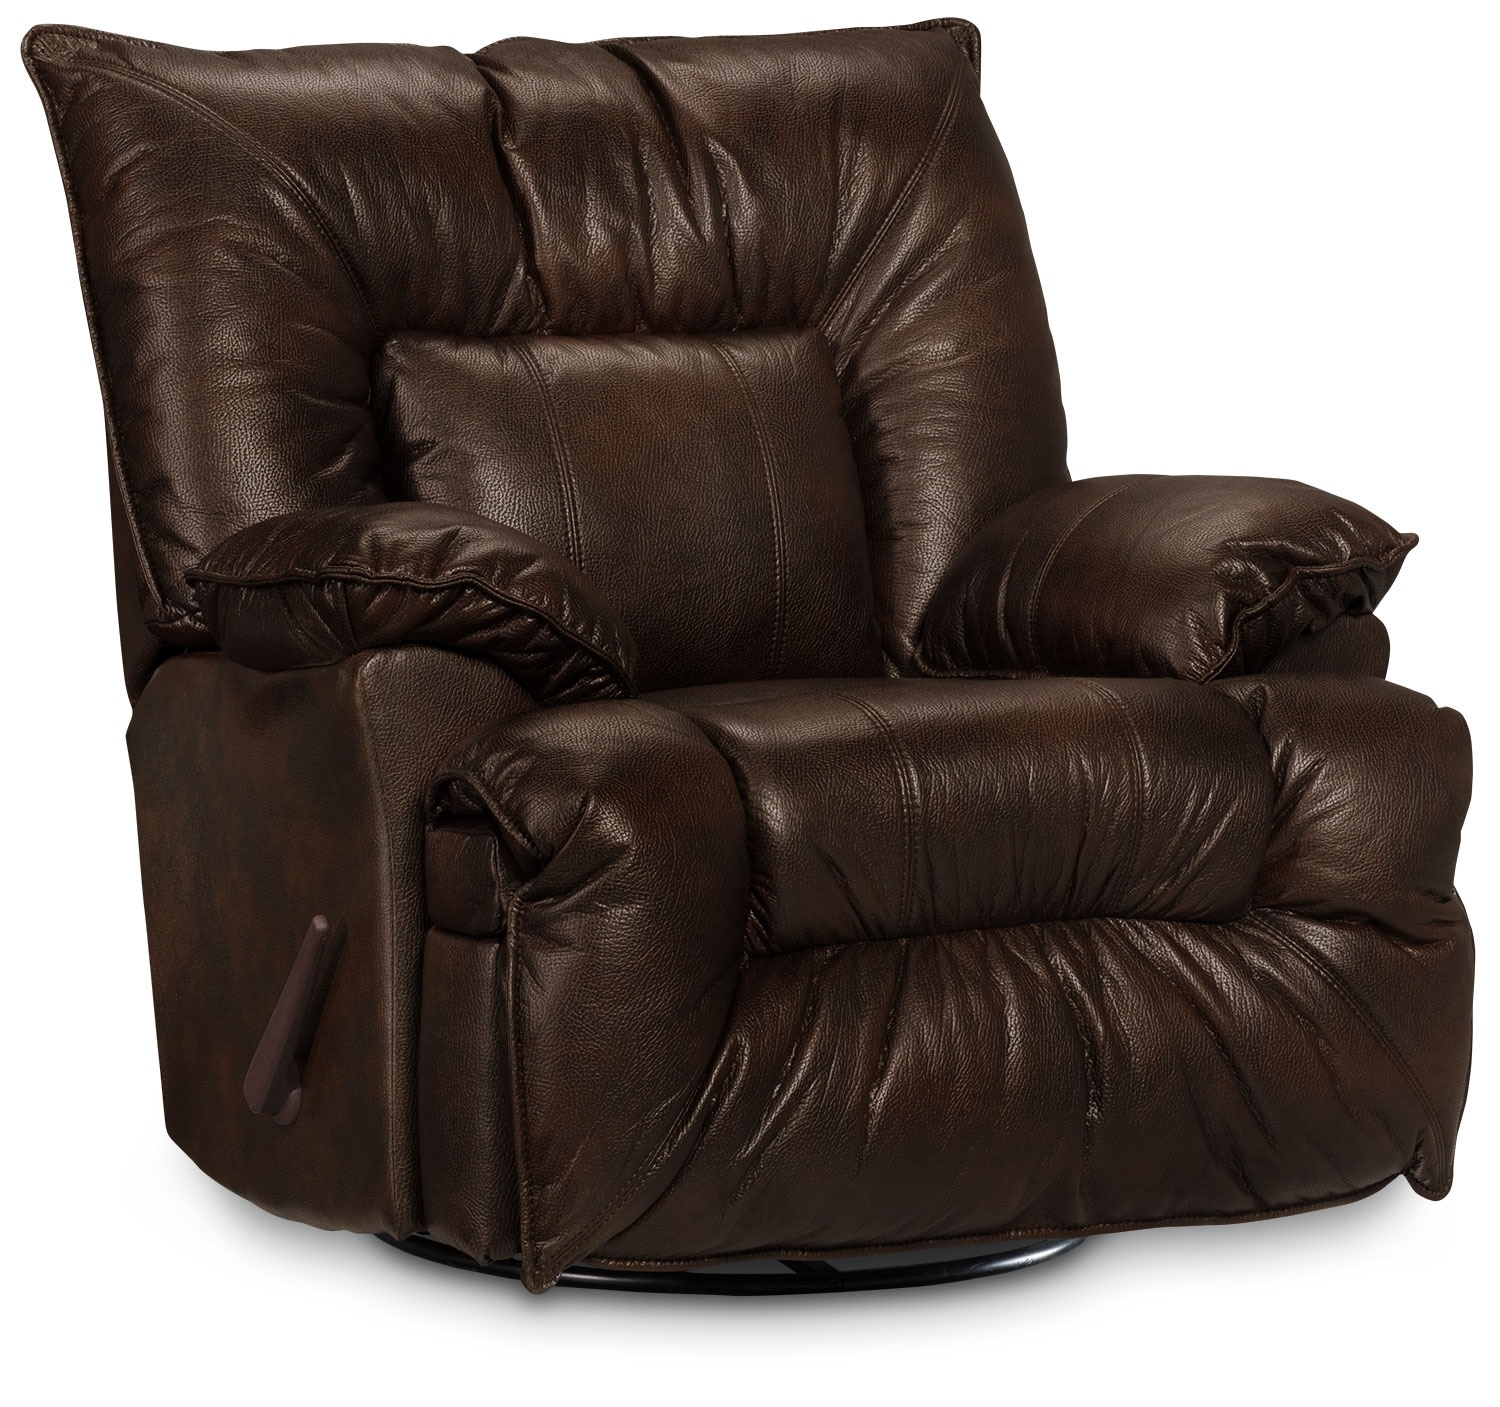 Designed2B Recliner 7726 Genuine Leather Swivel Glider Chair - Chocolate